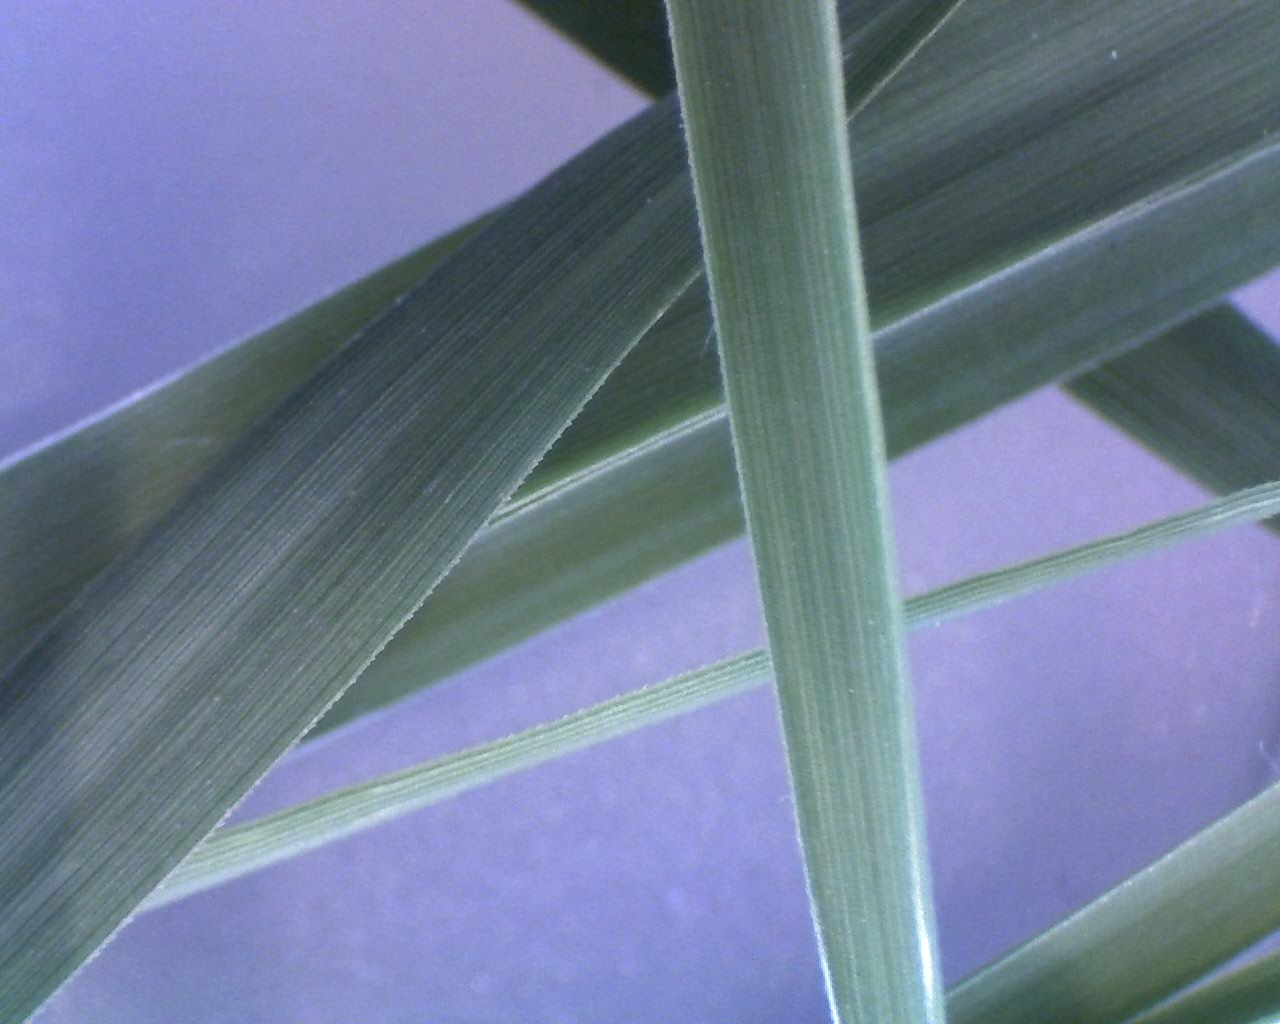 This photo shows a few leaves of grass at 10x magnification ...